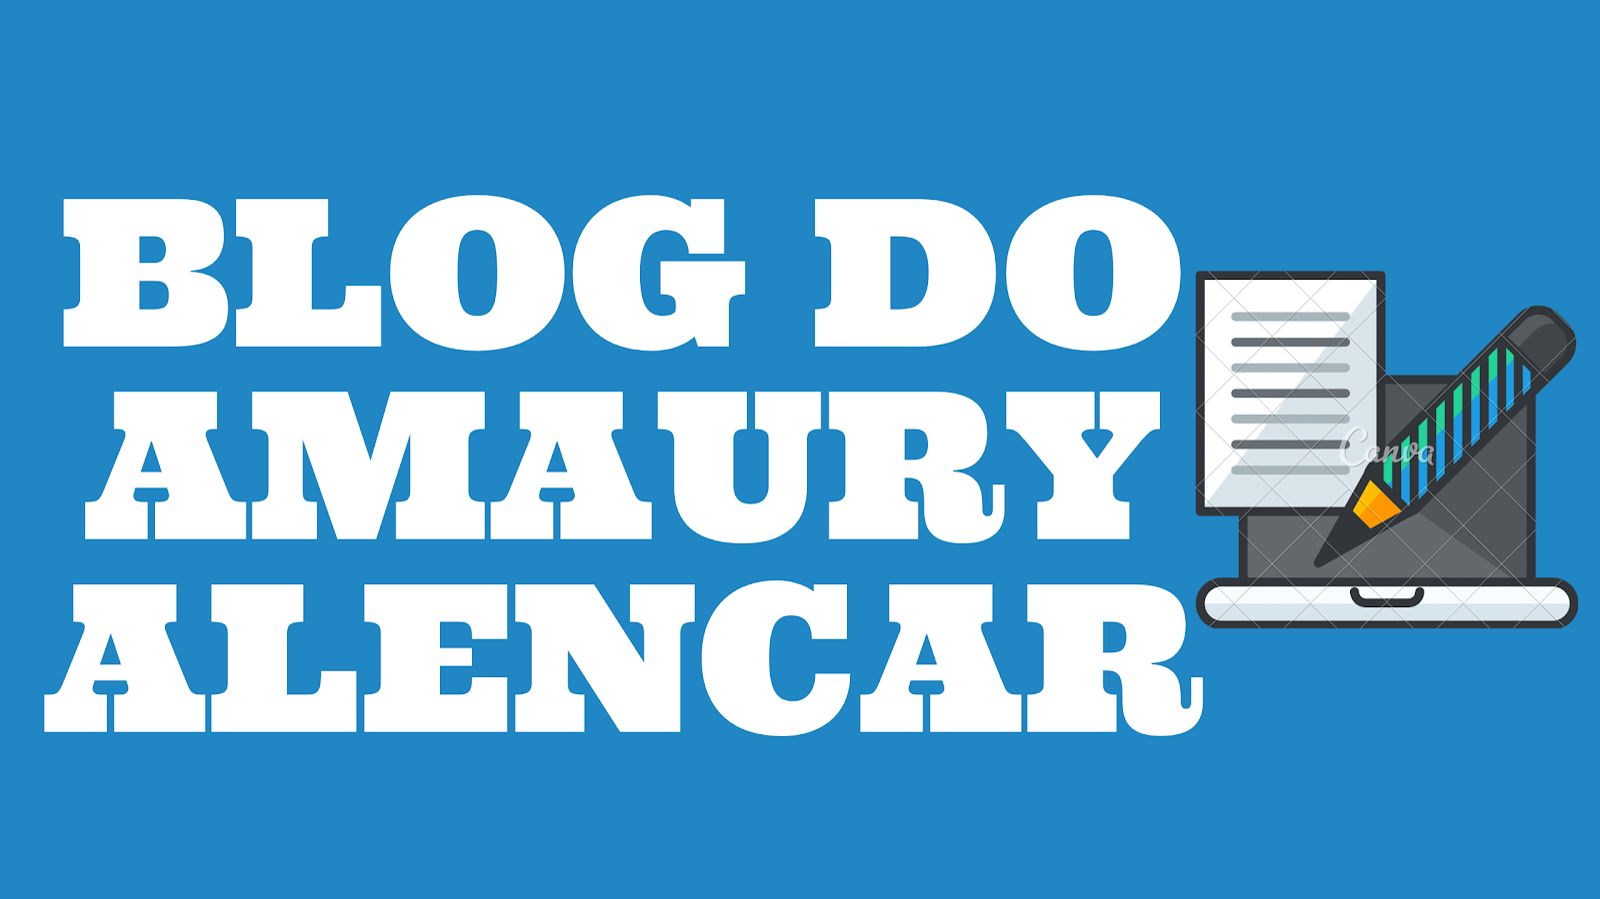 Blog Amaury Alencar - O Mais completo do Interior do Ceará